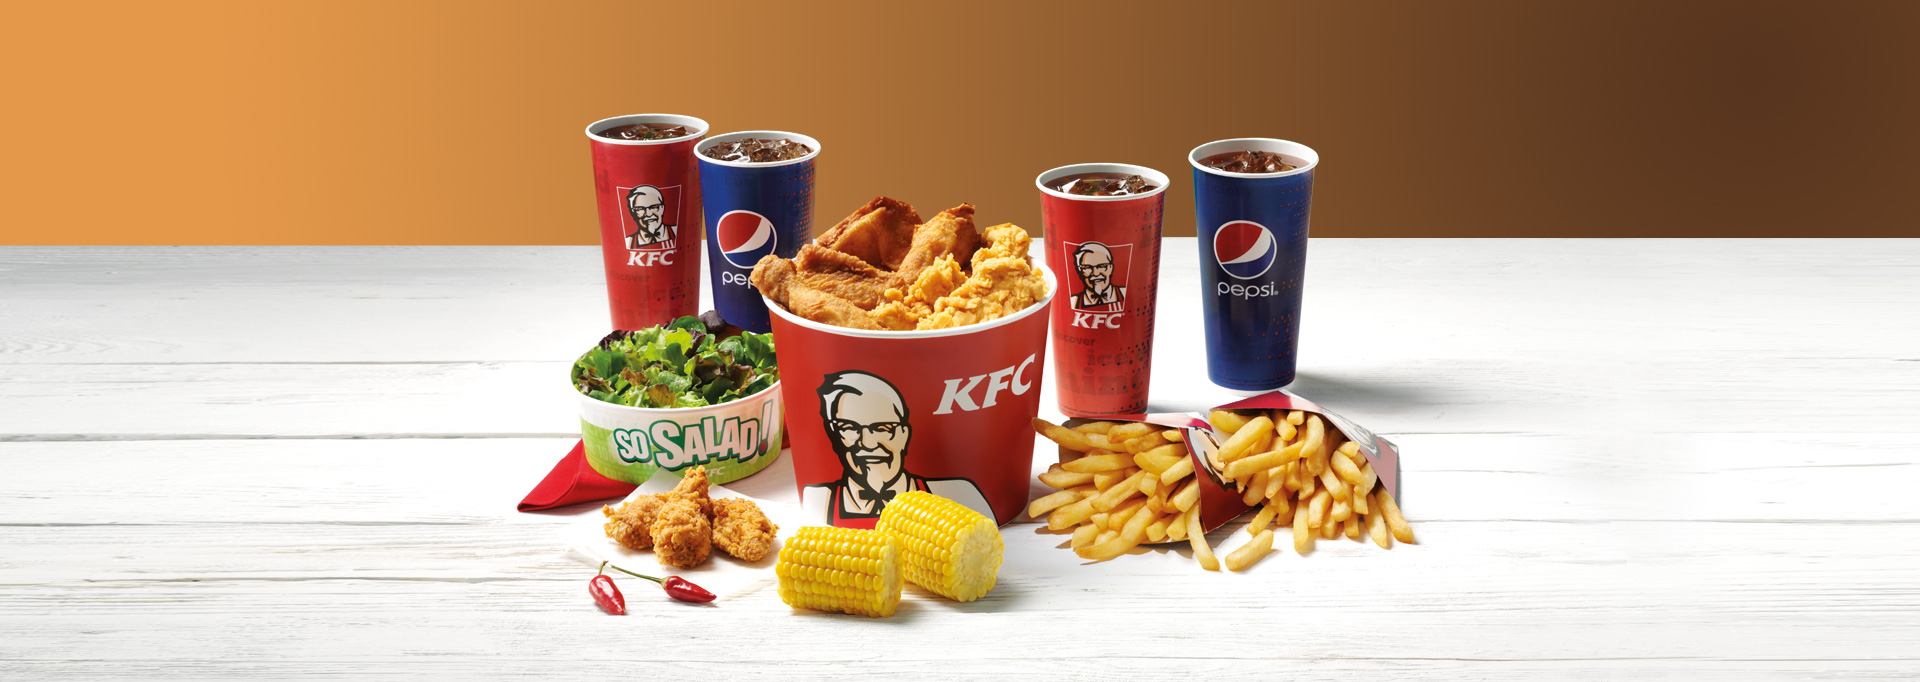 kfc pollo fritto menu